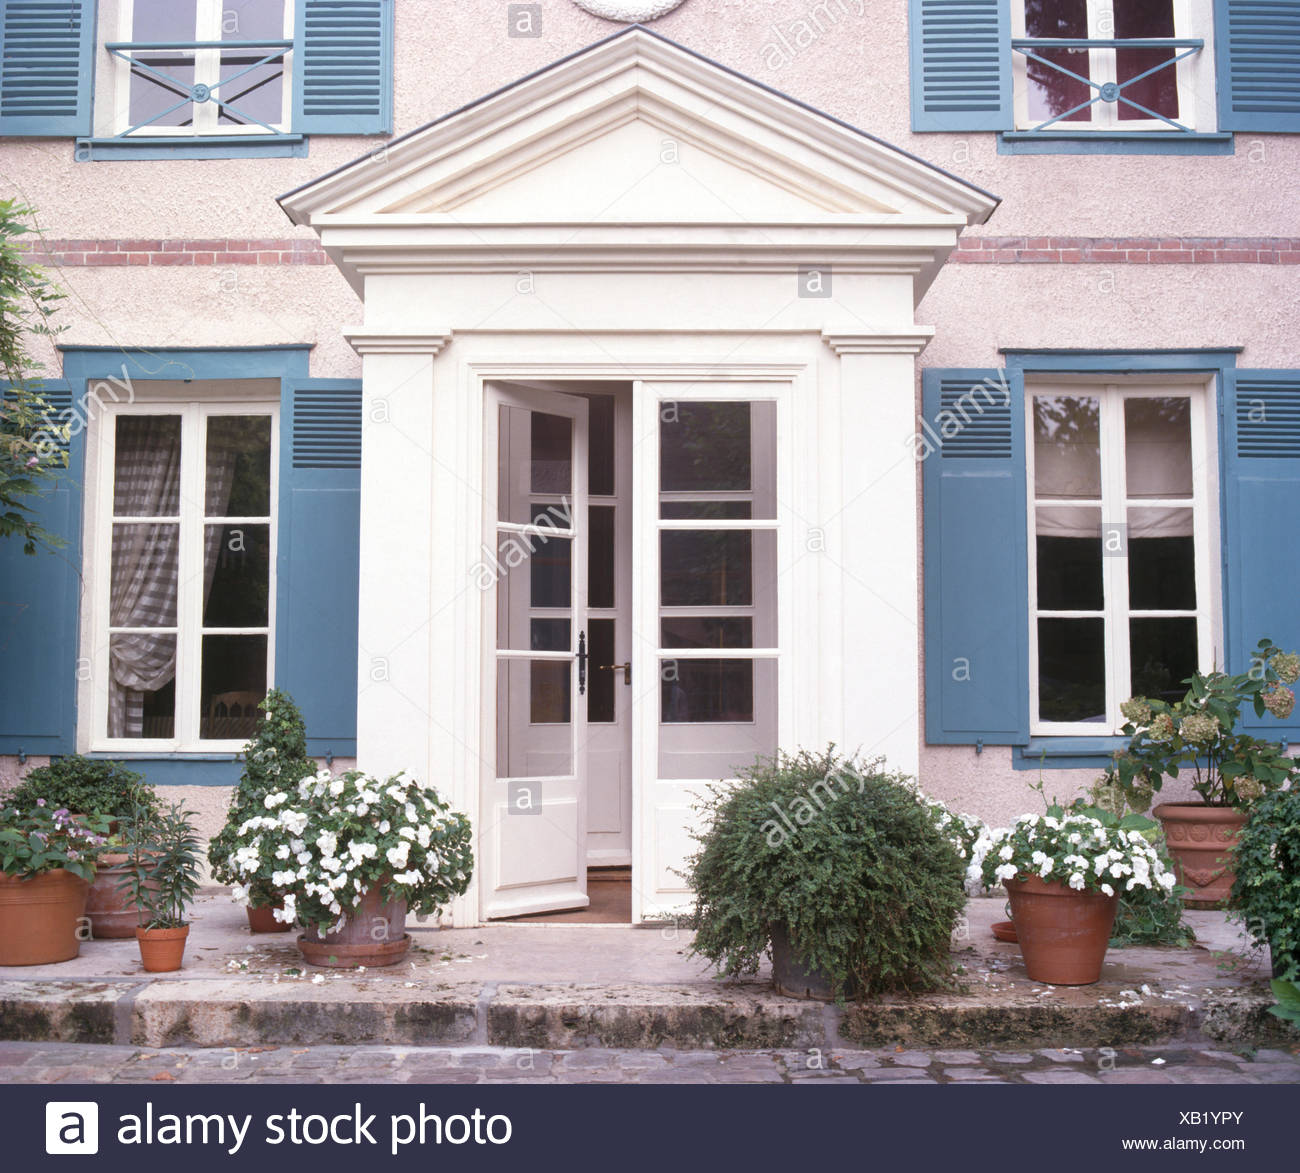 Glazed doors and windows stock photos glazed doors and for French doors with windows either side